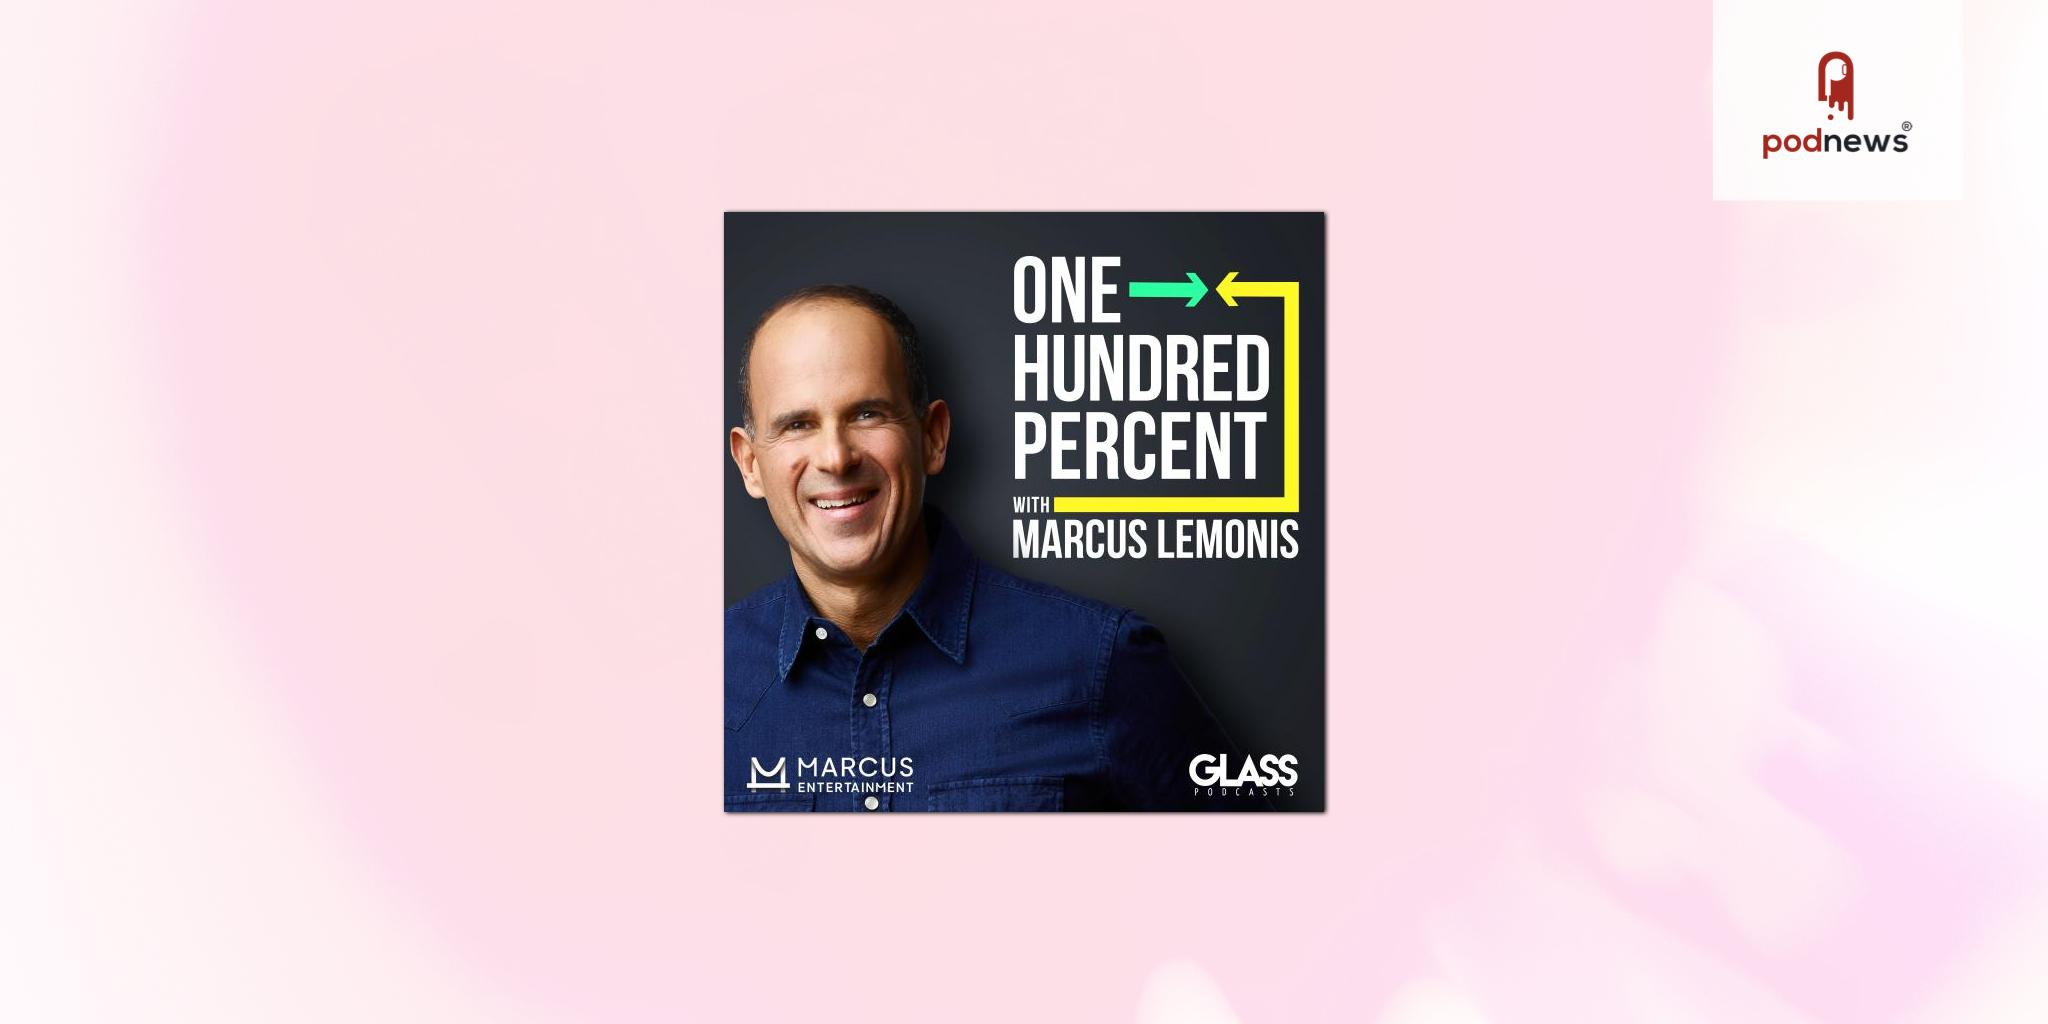 Marcus Lemonis inspires and educates on lively new podcast One Hundred Percent